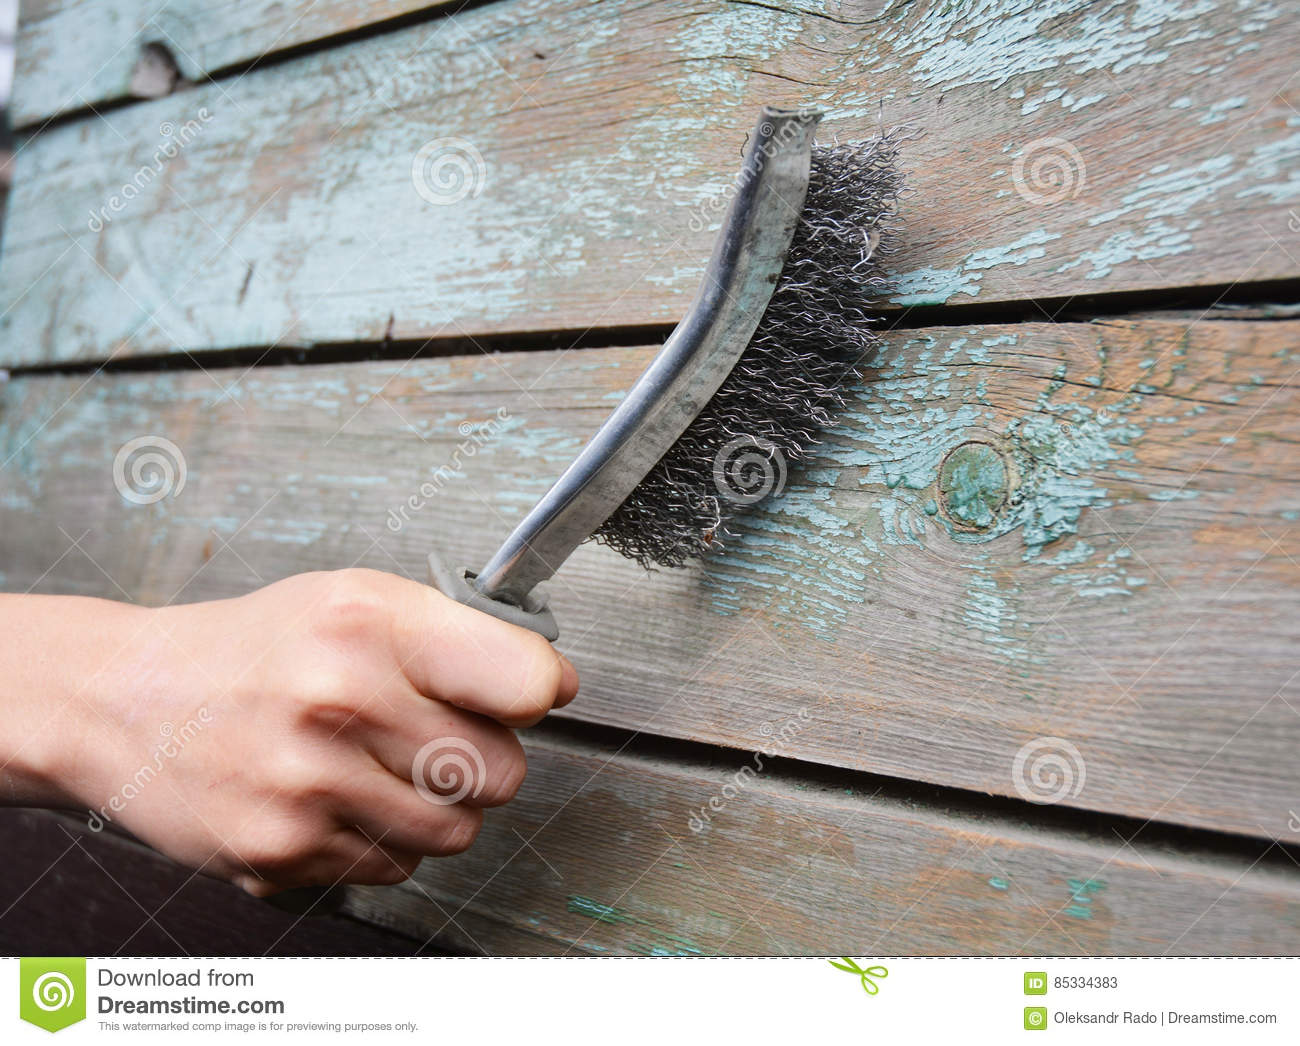 Remove The Old Paint From The Wooden Surface. Stock Image - Image of ...